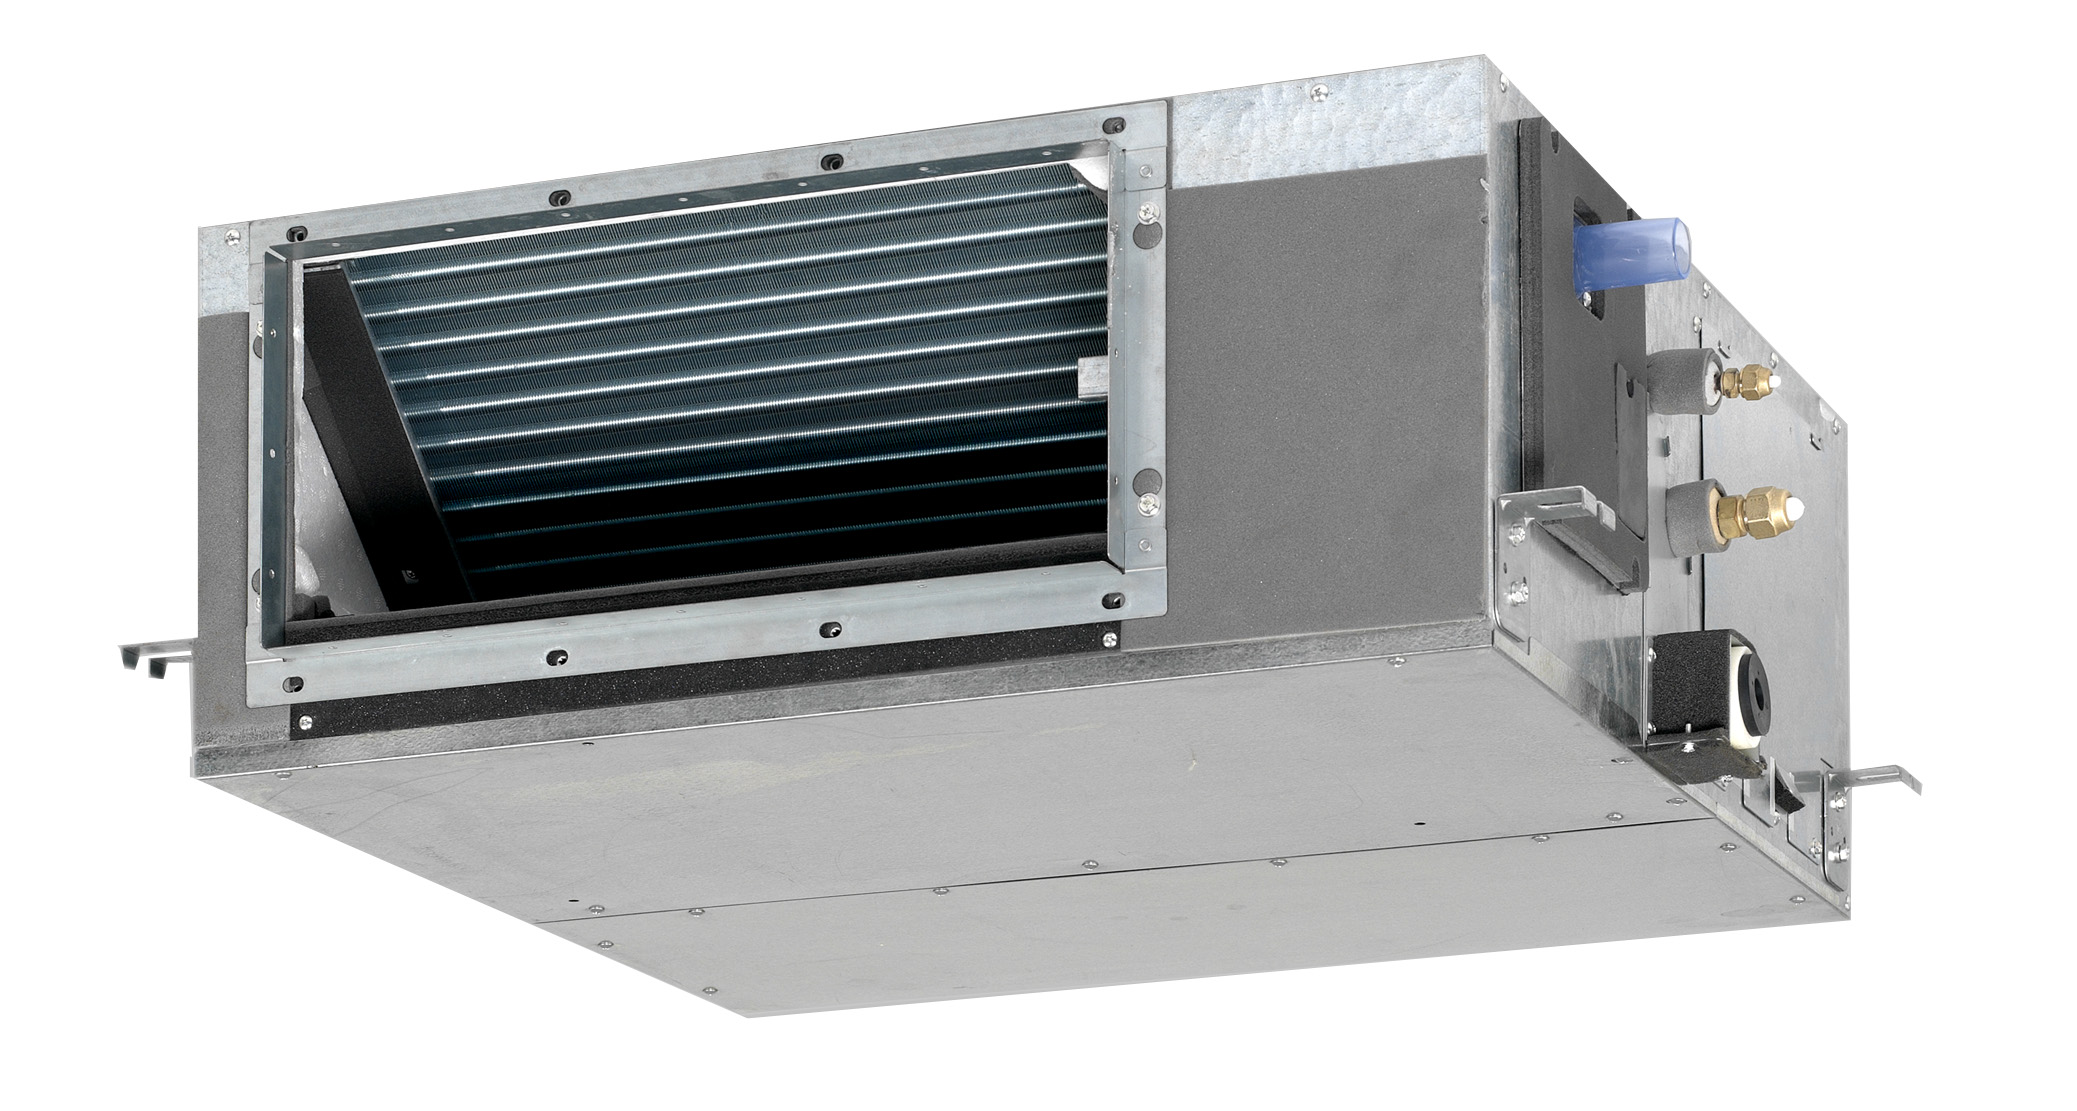 DAIKIN SKY AIR BUILT IN DUCTED INDOOR UNIT 3.5KW C/W HARD WIRED  #7F6E4C